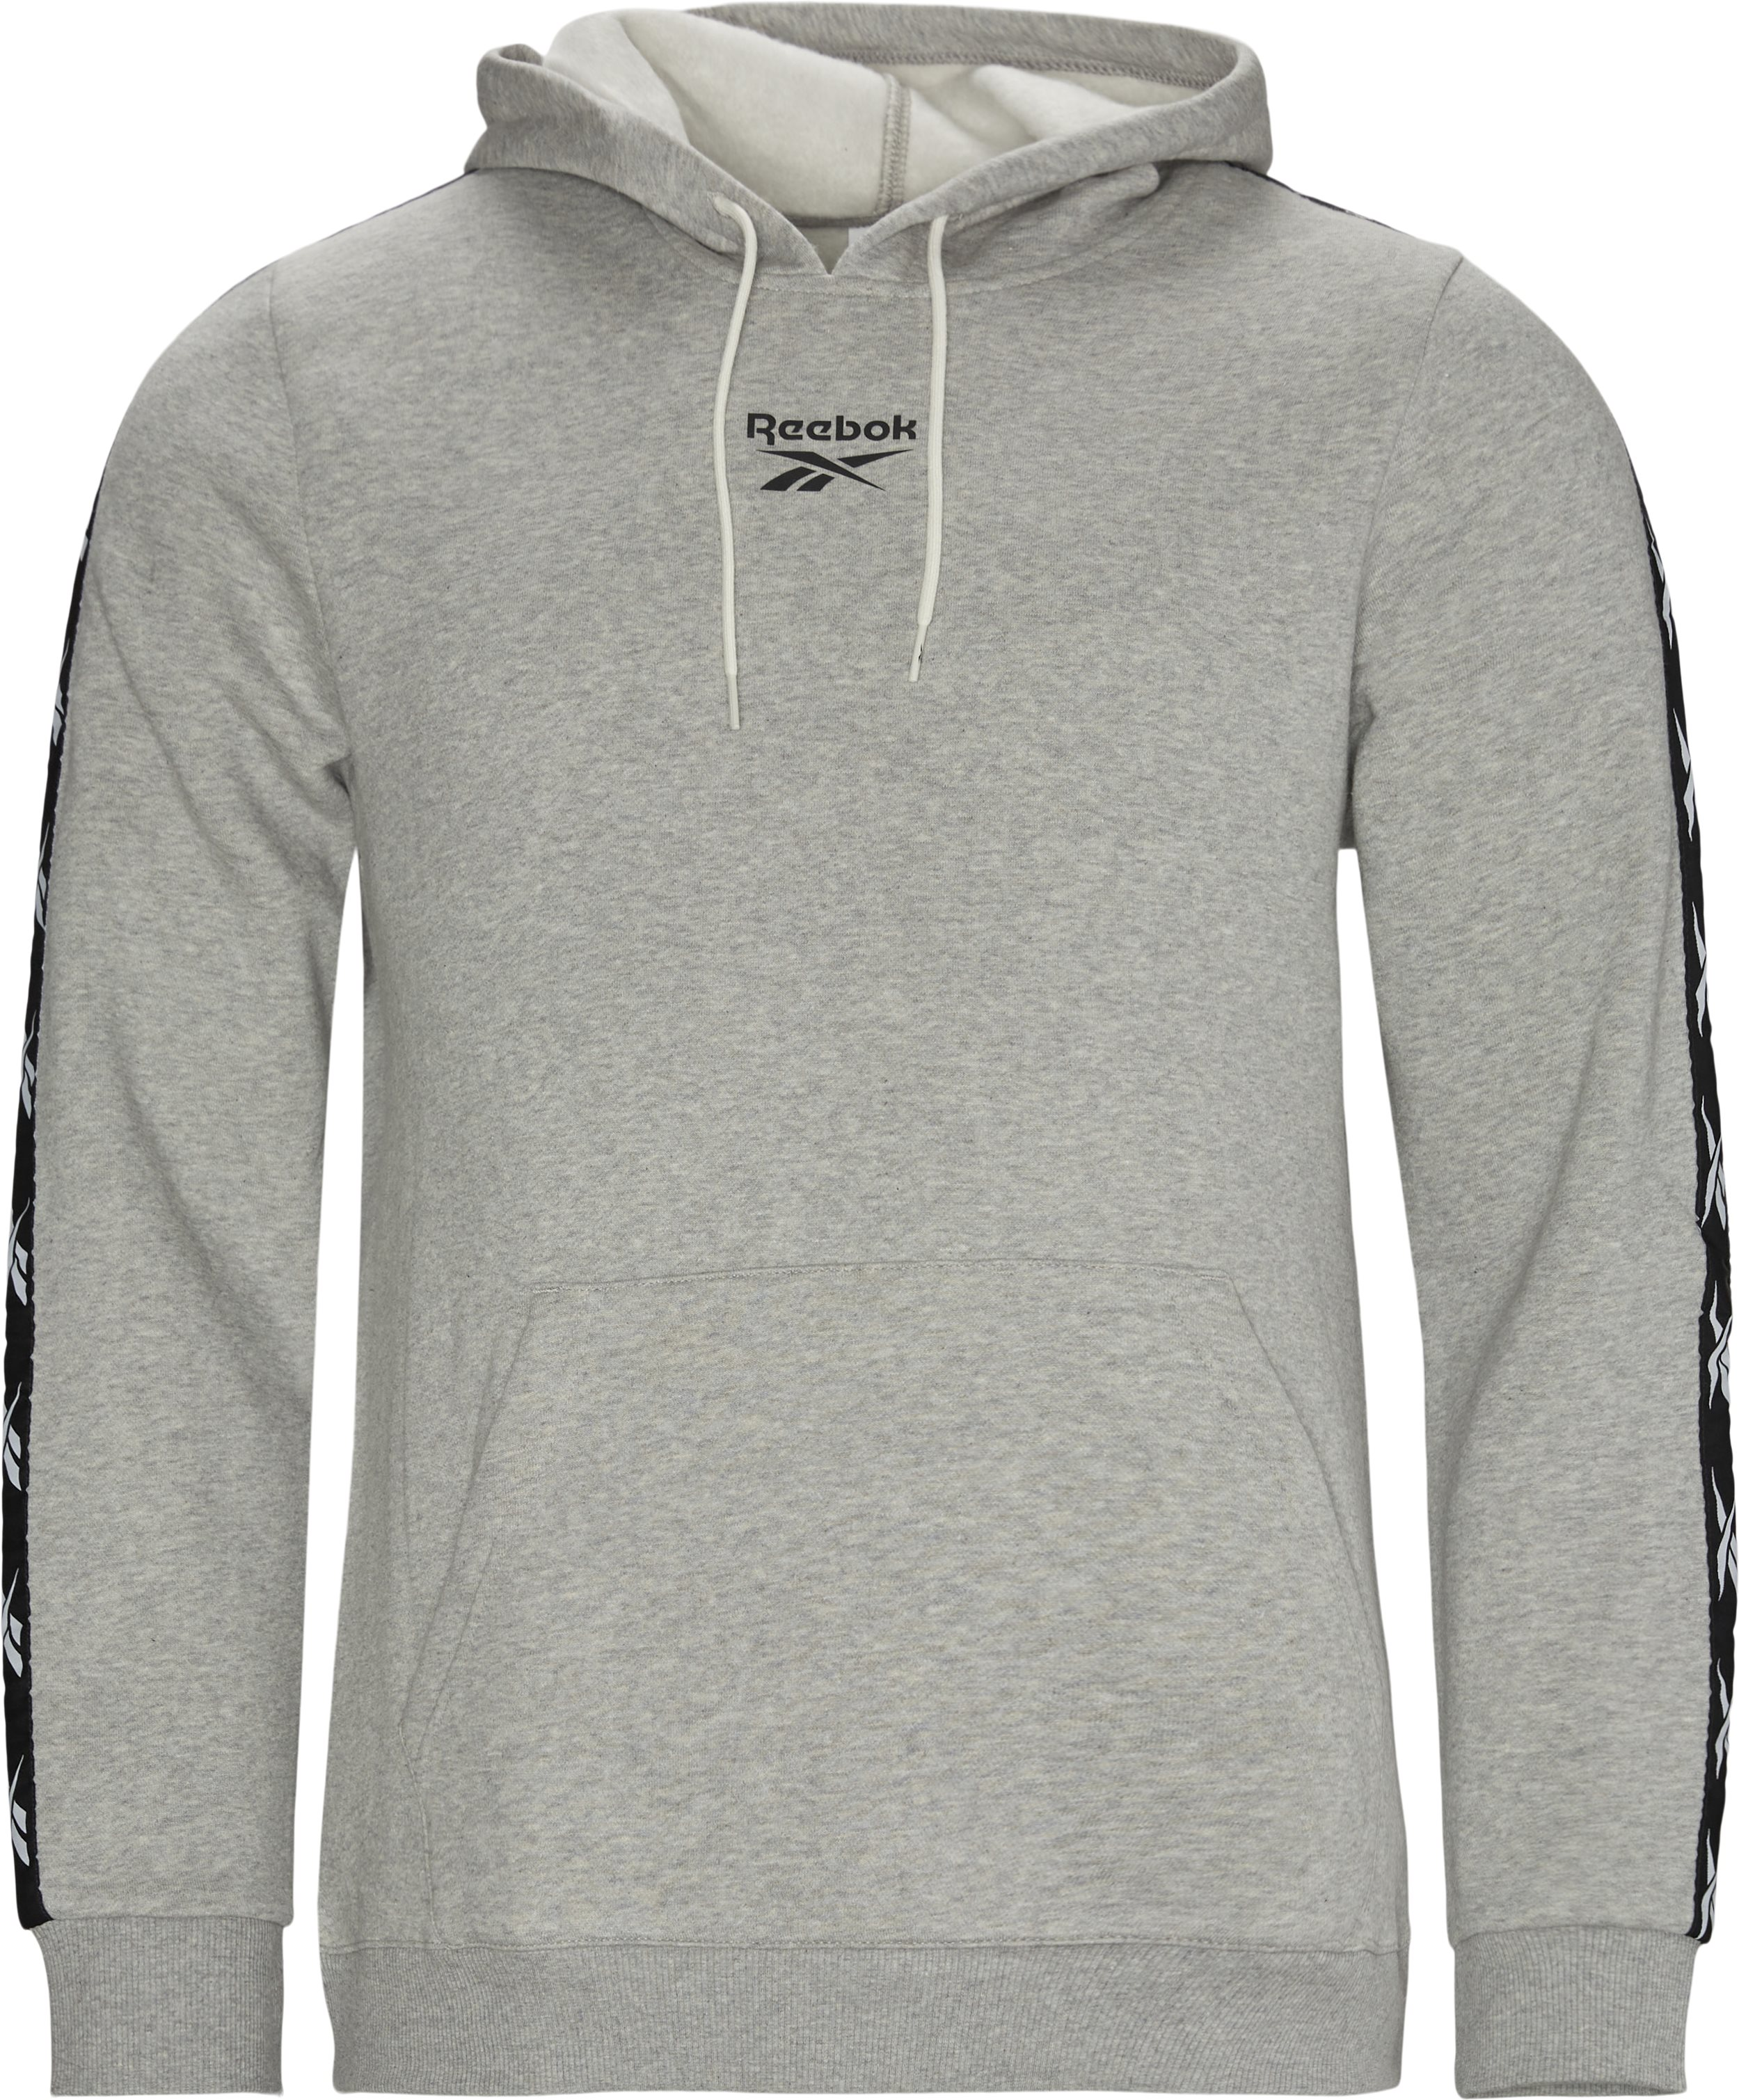 Te Tape Hoodie - Sweatshirts - Regular - Grå